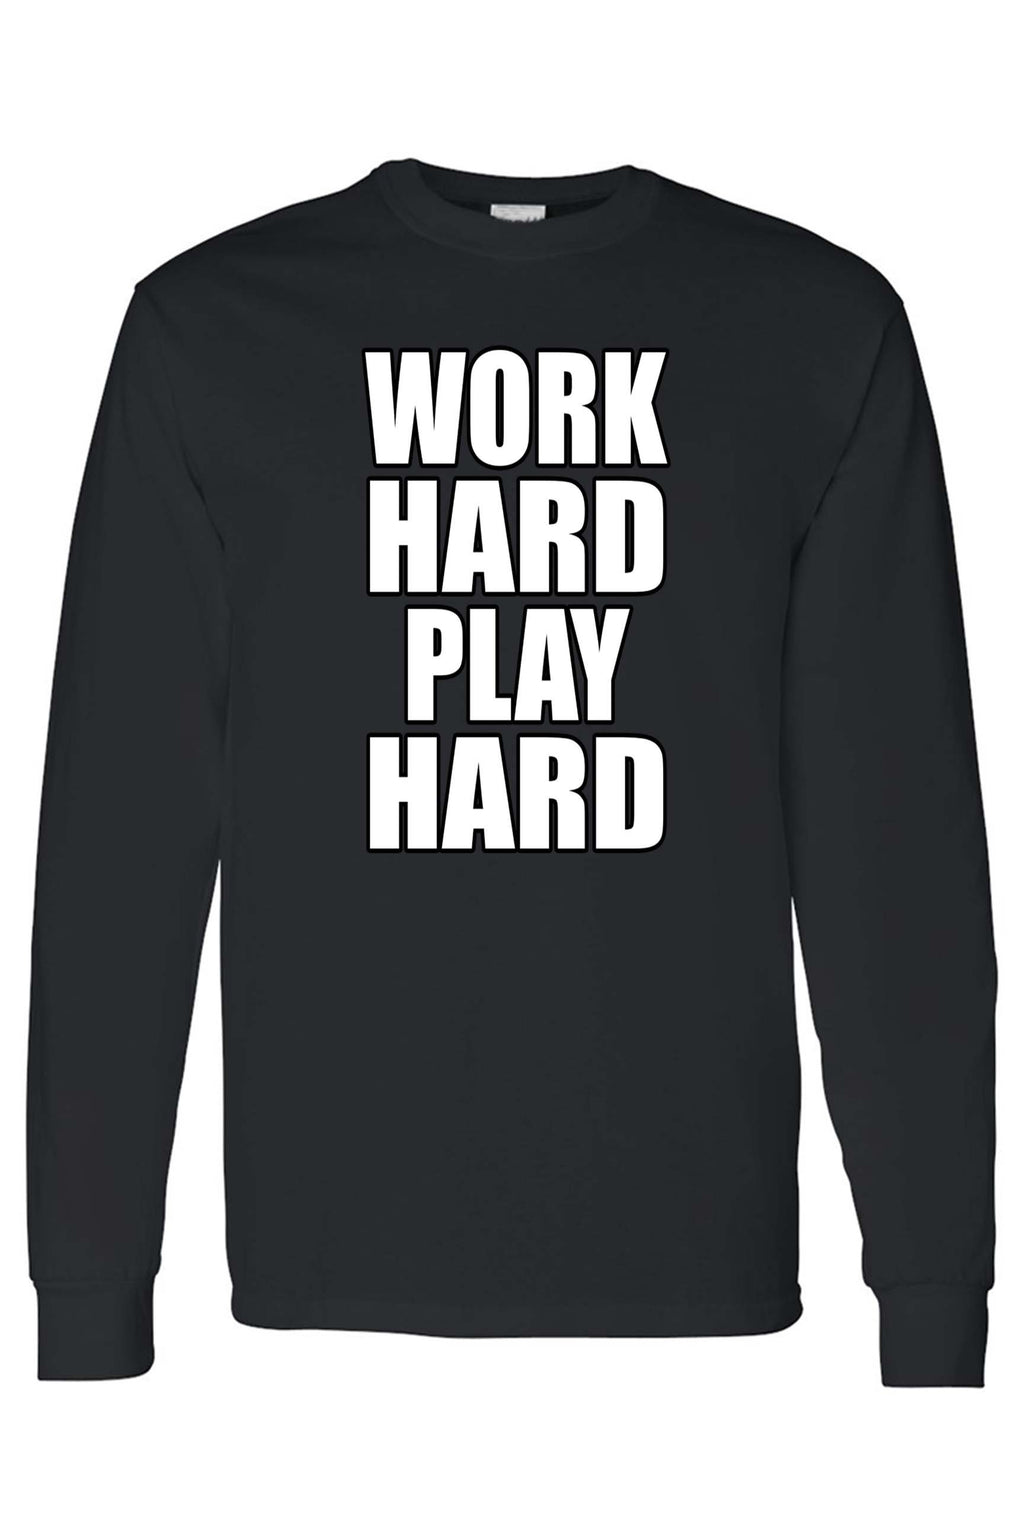 Unisex Funny Work Hard Play Hard Long Sleeve shirt